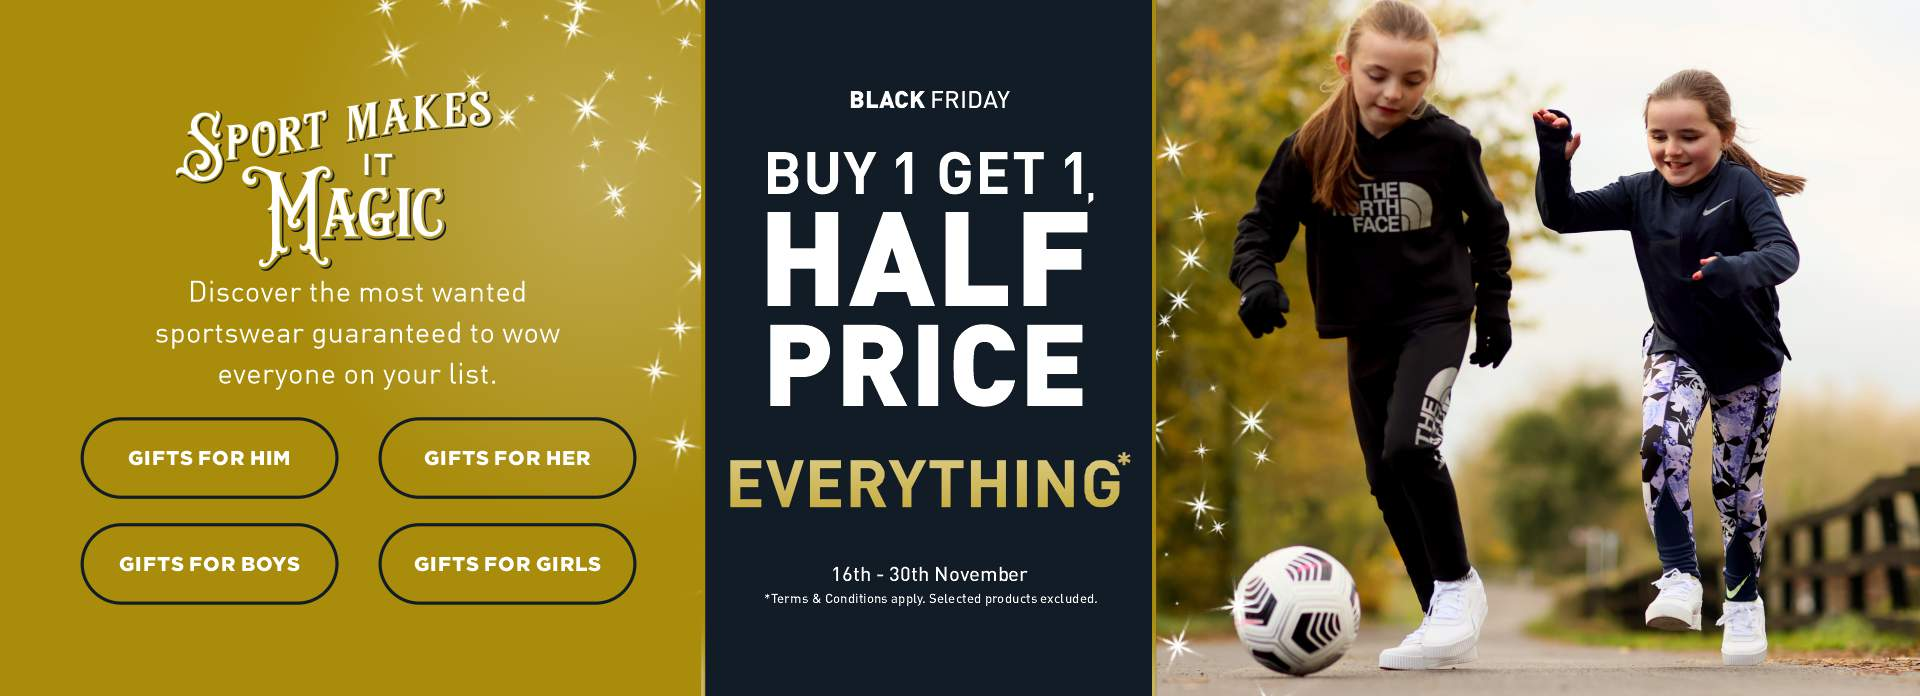 Elverys_Black_Friday2020_Xmas_Banner_1920x696.jpg